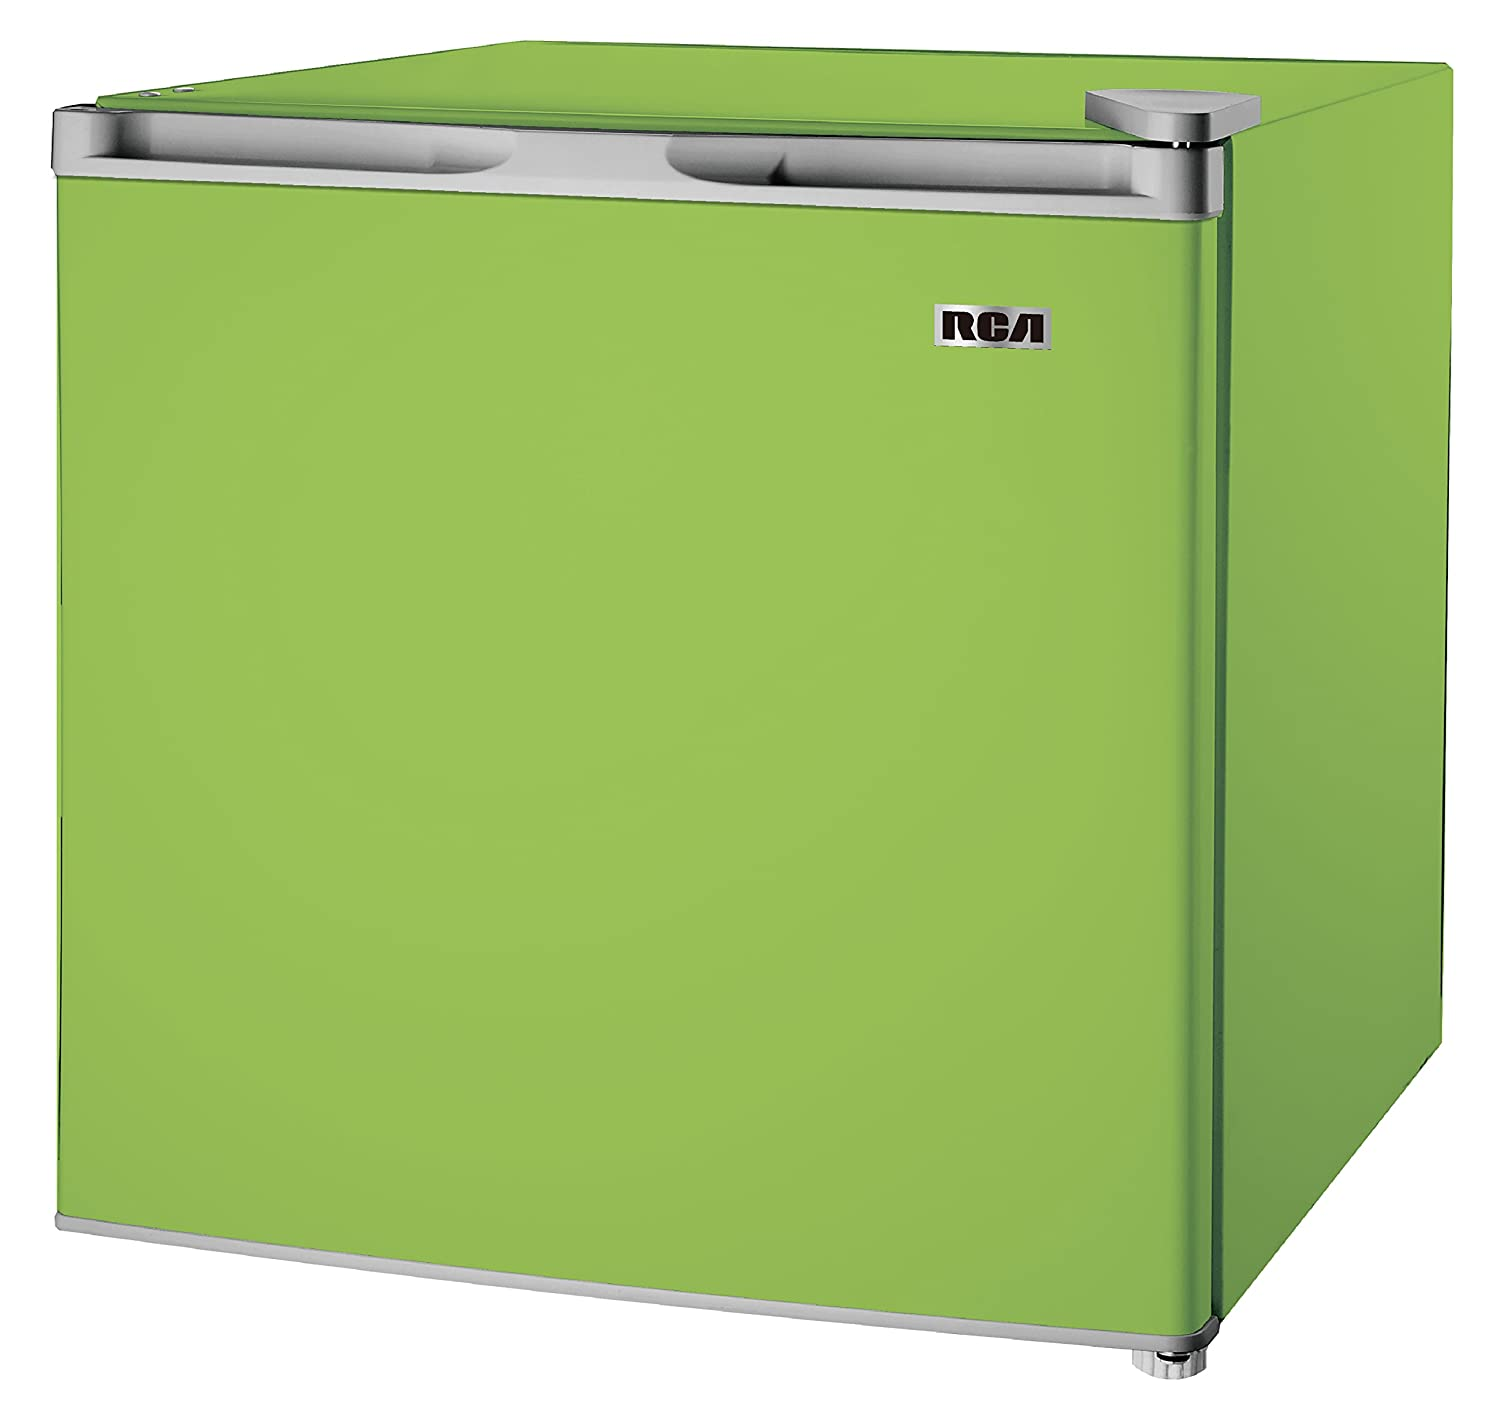 new mini fridge refrigerator freezer 1 6 cu cooler dorm bedrooms